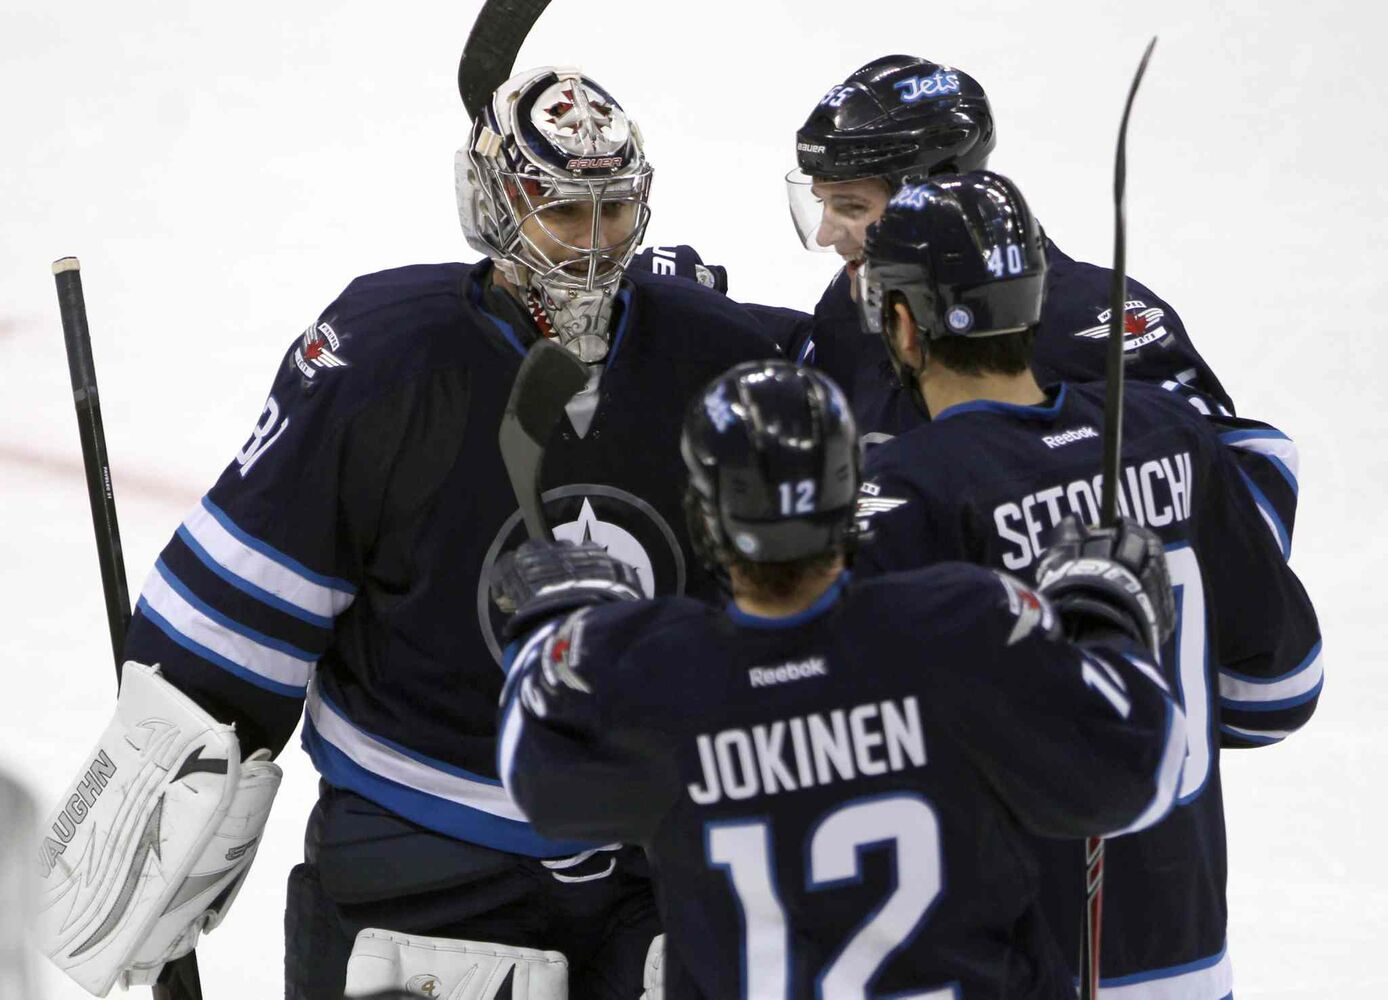 Winnipeg Jets goaltender Ondrej Pavelec celebrates the shootout win with teammates (from top) Mark Scheifele, Devin Setoguchi and Olli Jokinen. (JOE BRYKSA / WINNIPEG FREE PRESS)